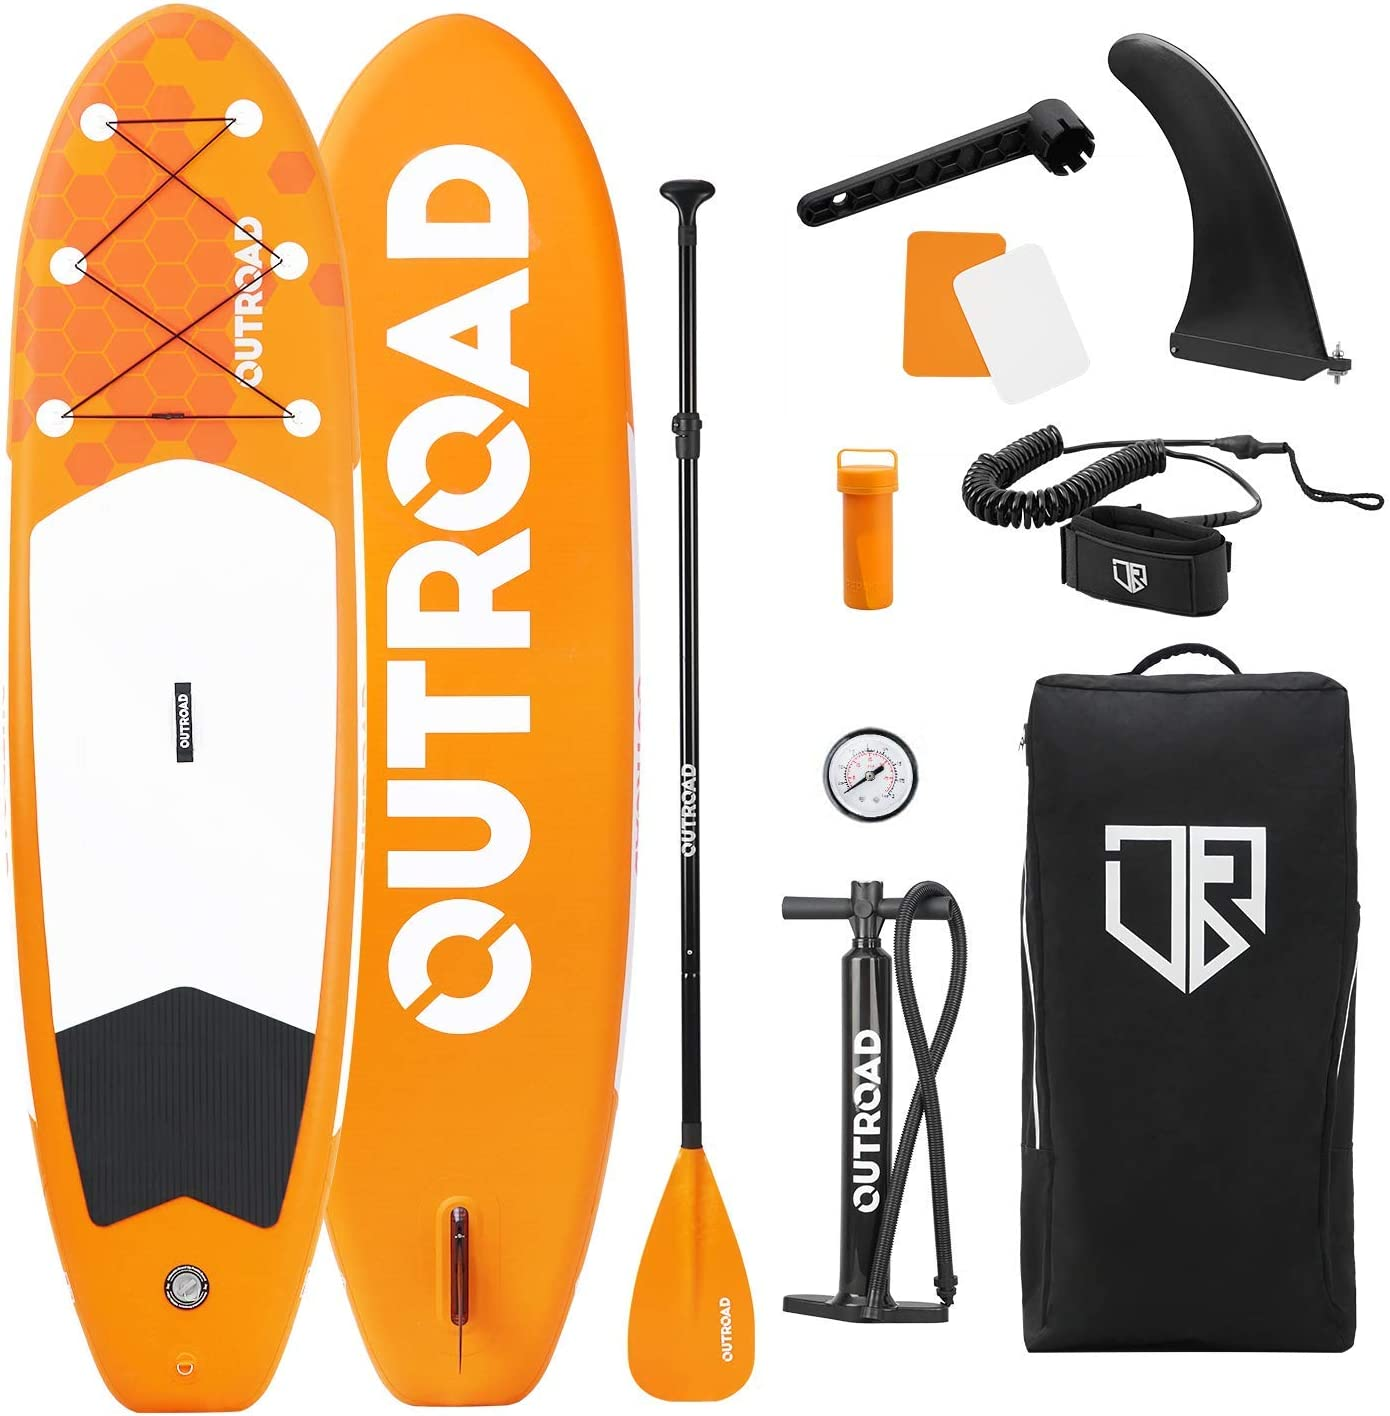 Max4out 2021 new Inflatable Stand 2021new shipping free Up Paddle Board x 10'6